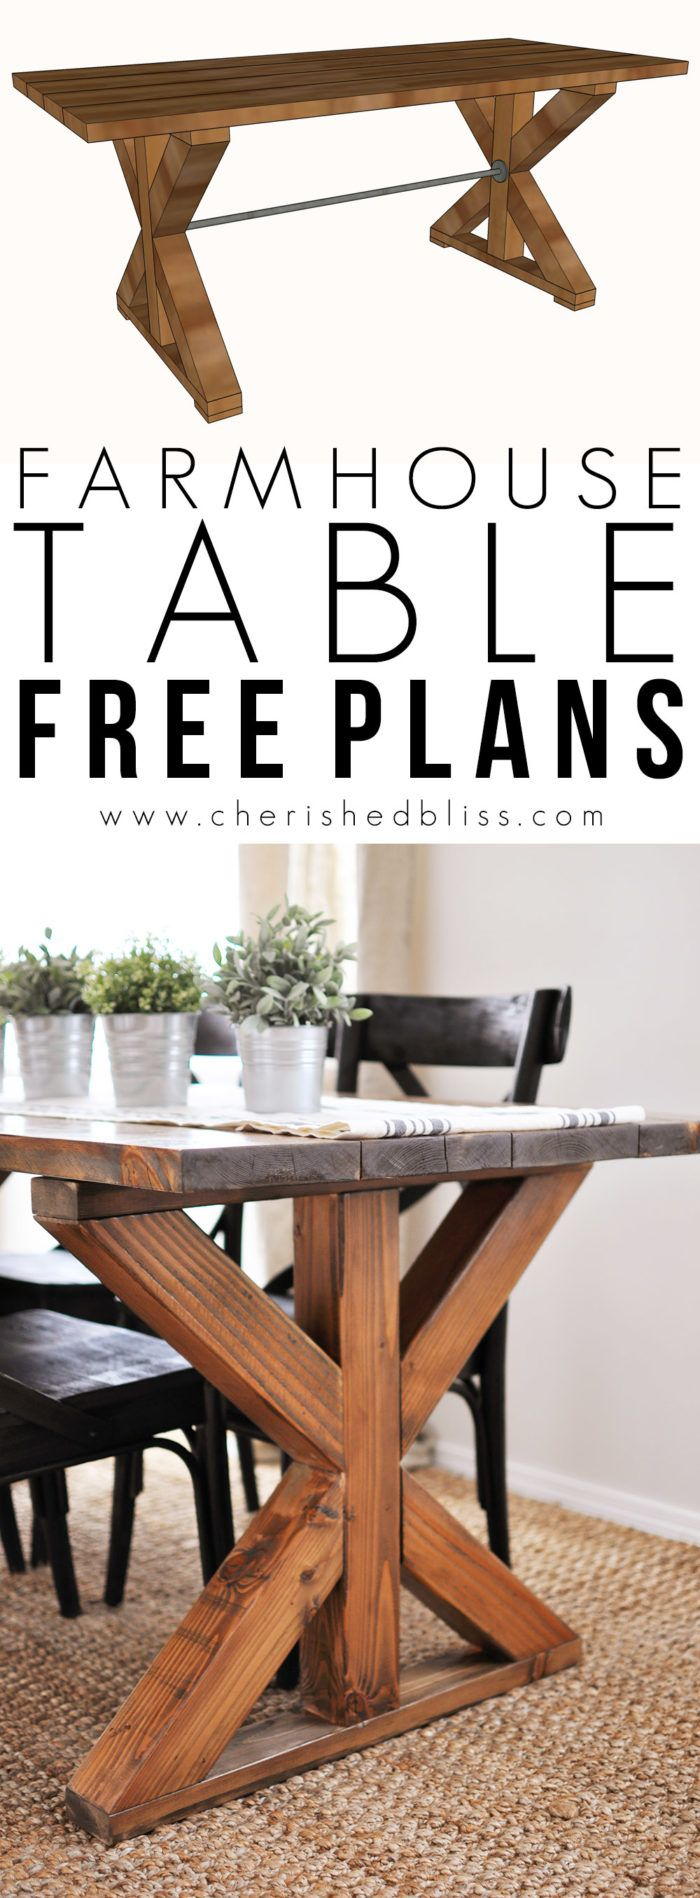 Best 20+ Farmhouse table ideas on Pinterest